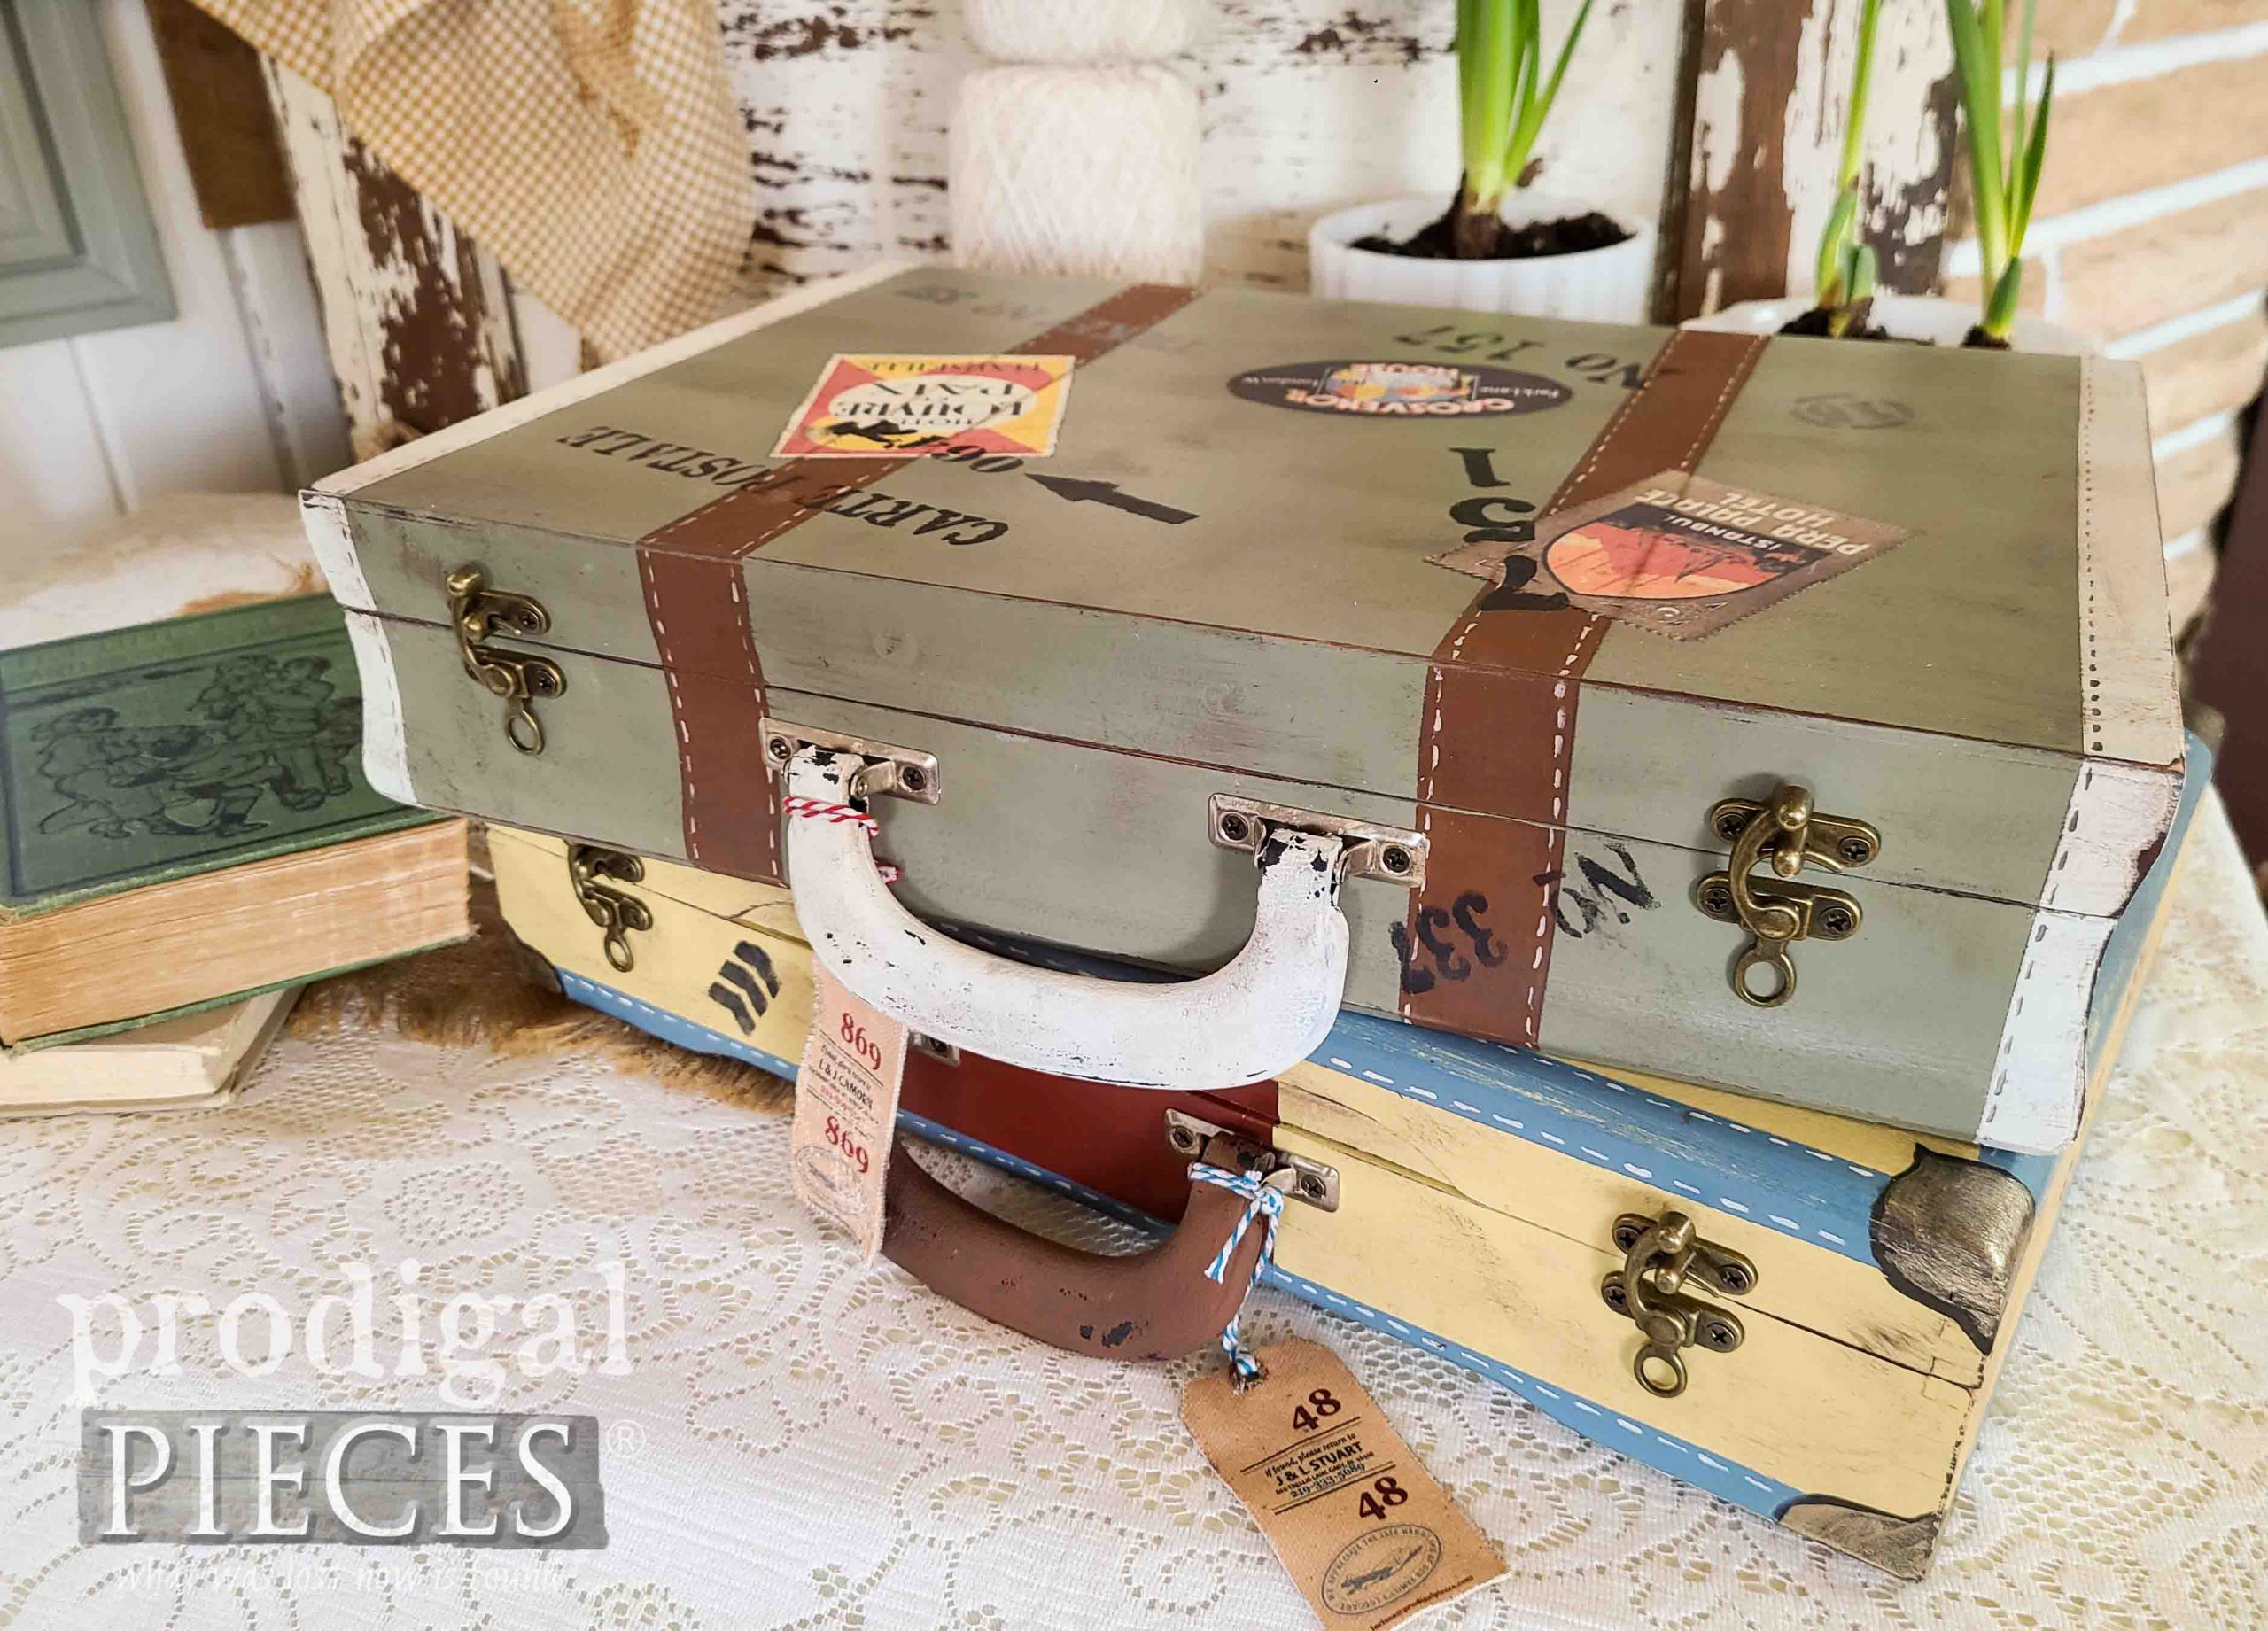 Stacked DIY Vintage Luggage Boxes by Larissa of Prodigal Pieces | prodigalpieces.com #prodigalpieces #diy #vintage #home #homedecor